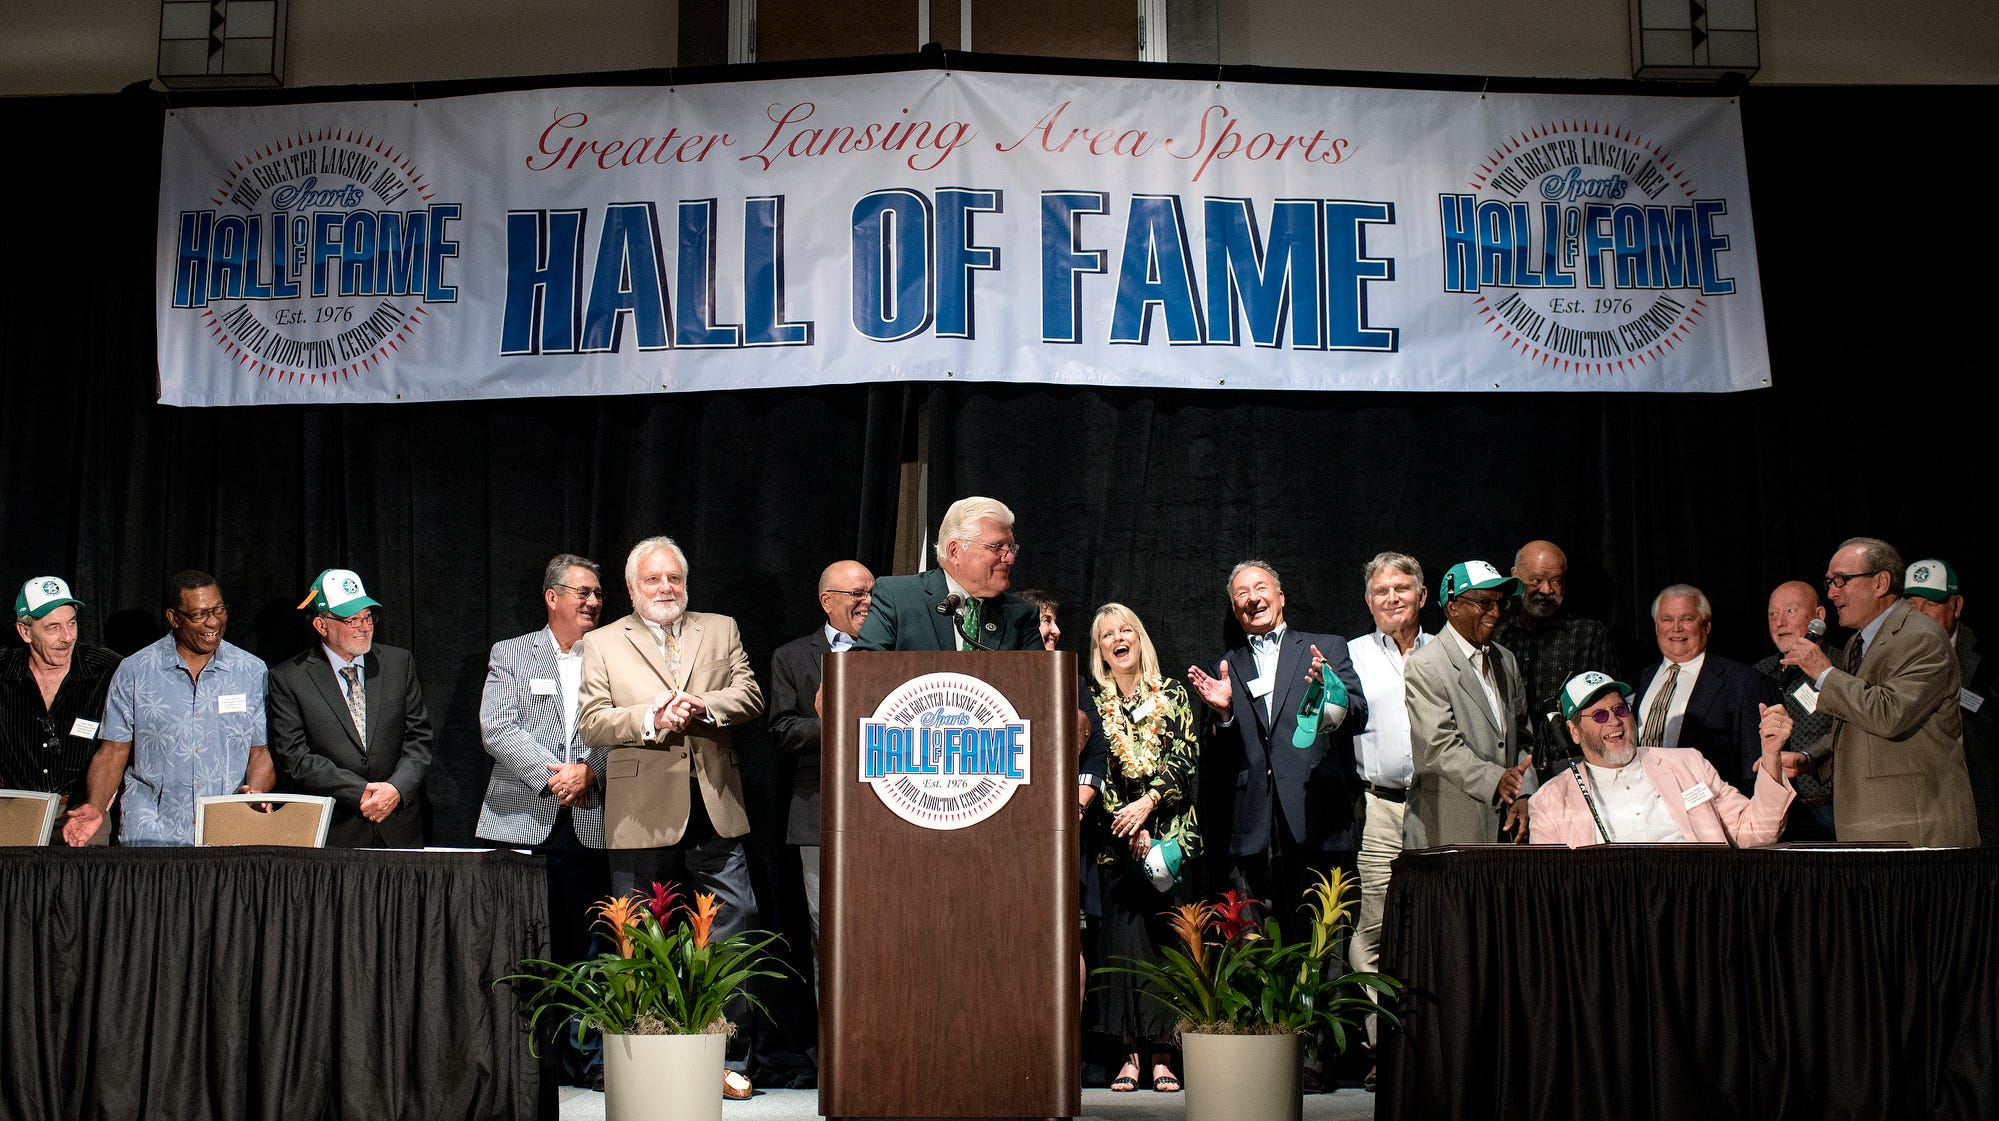 """Coach Robert """"Turf"""" Kauffman, center, is joined by members of the 1970 Lansing All-Stars football team during the 2018 Greater Lansing Area Sports Hall of Fame Induction Ceremony at the Lansing Center on Thursday, July 26, 2018, in downtown Lansing. The team was induced into the hall of fame."""